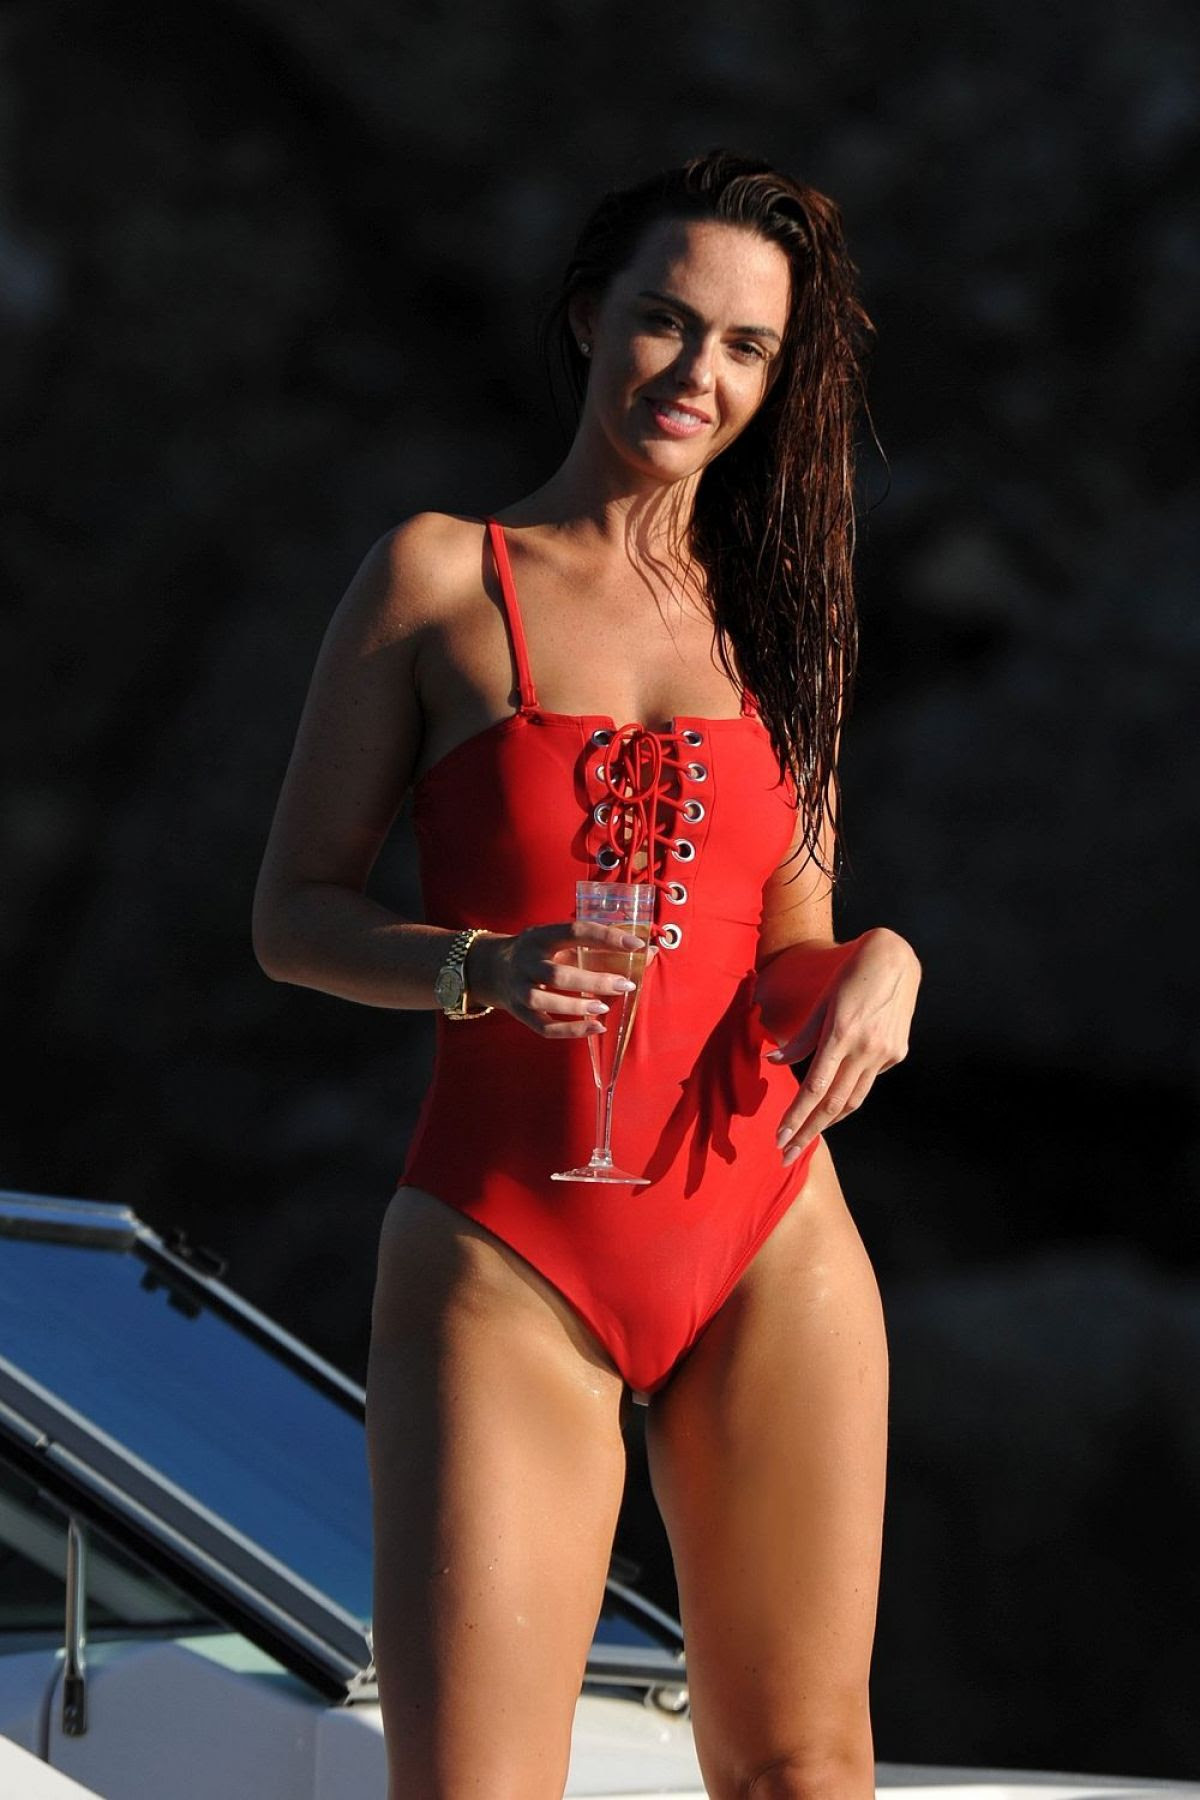 JENNIFER METCALFE in Wwimsuit at a Boat in Spain 11/05/2015